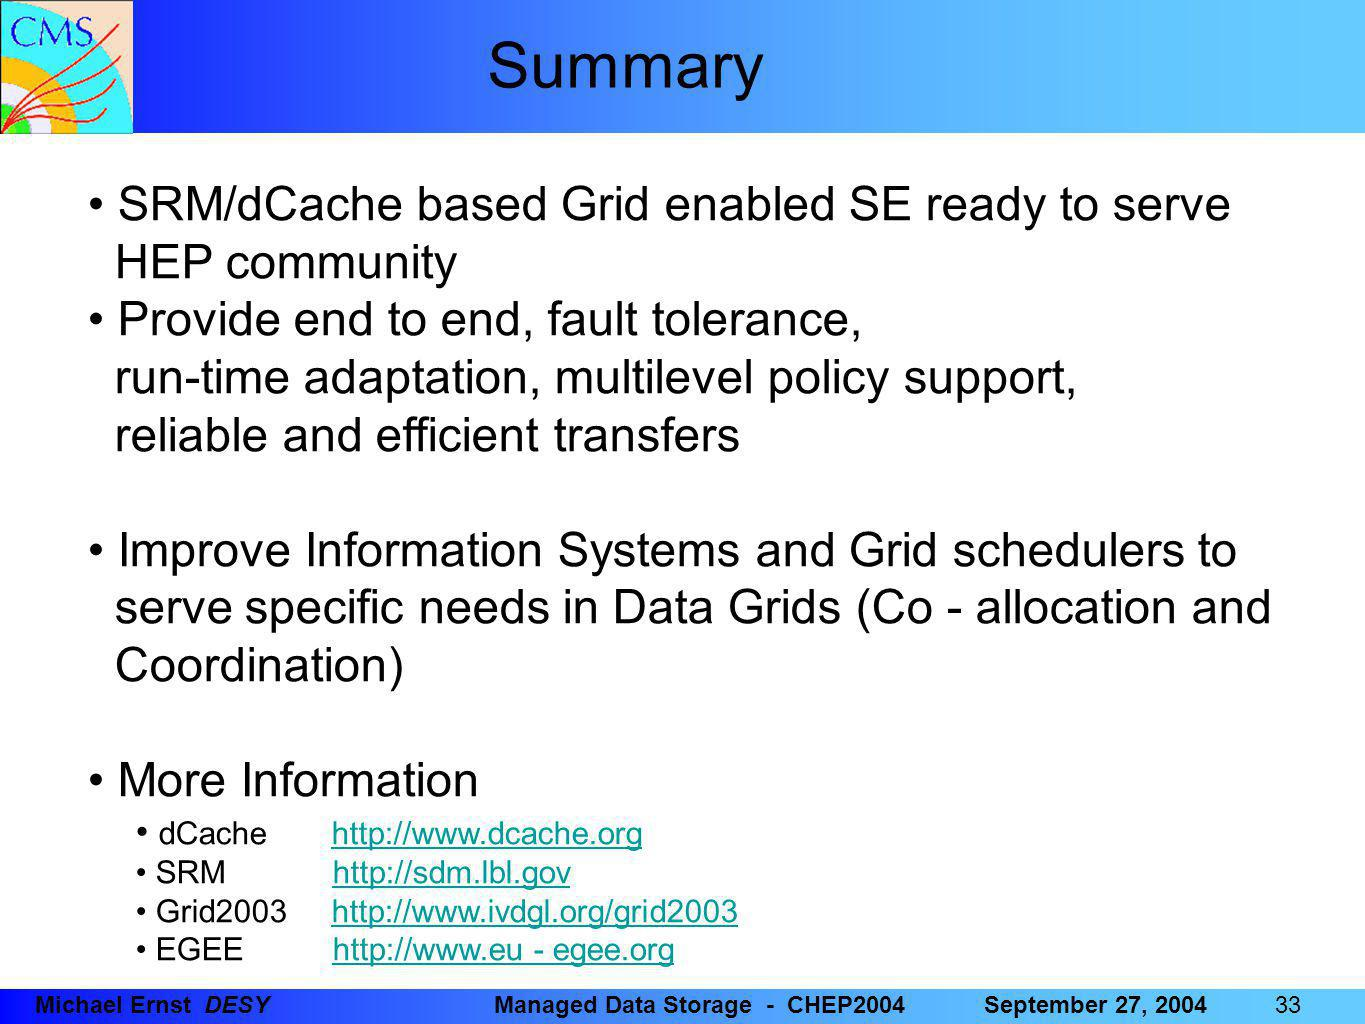 33 Michael Ernst DESYManaged Data Storage - CHEP2004September 27, 2004 SRM/dCache based Grid enabled SE ready to serve HEP community Provide end to end, fault tolerance, run-time adaptation, multilevel policy support, reliable and efficient transfers Improve Information Systems and Grid schedulers to serve specific needs in Data Grids (Co - allocation and Coordination) More Information dCache http://www.dcache.orghttp://www.dcache.org SRM http://sdm.lbl.govhttp://sdm.lbl.gov Grid2003 http://www.ivdgl.org/grid2003http://www.ivdgl.org/grid2003 EGEE http://www.eu - egee.orghttp://www.eu - egee.org Summary